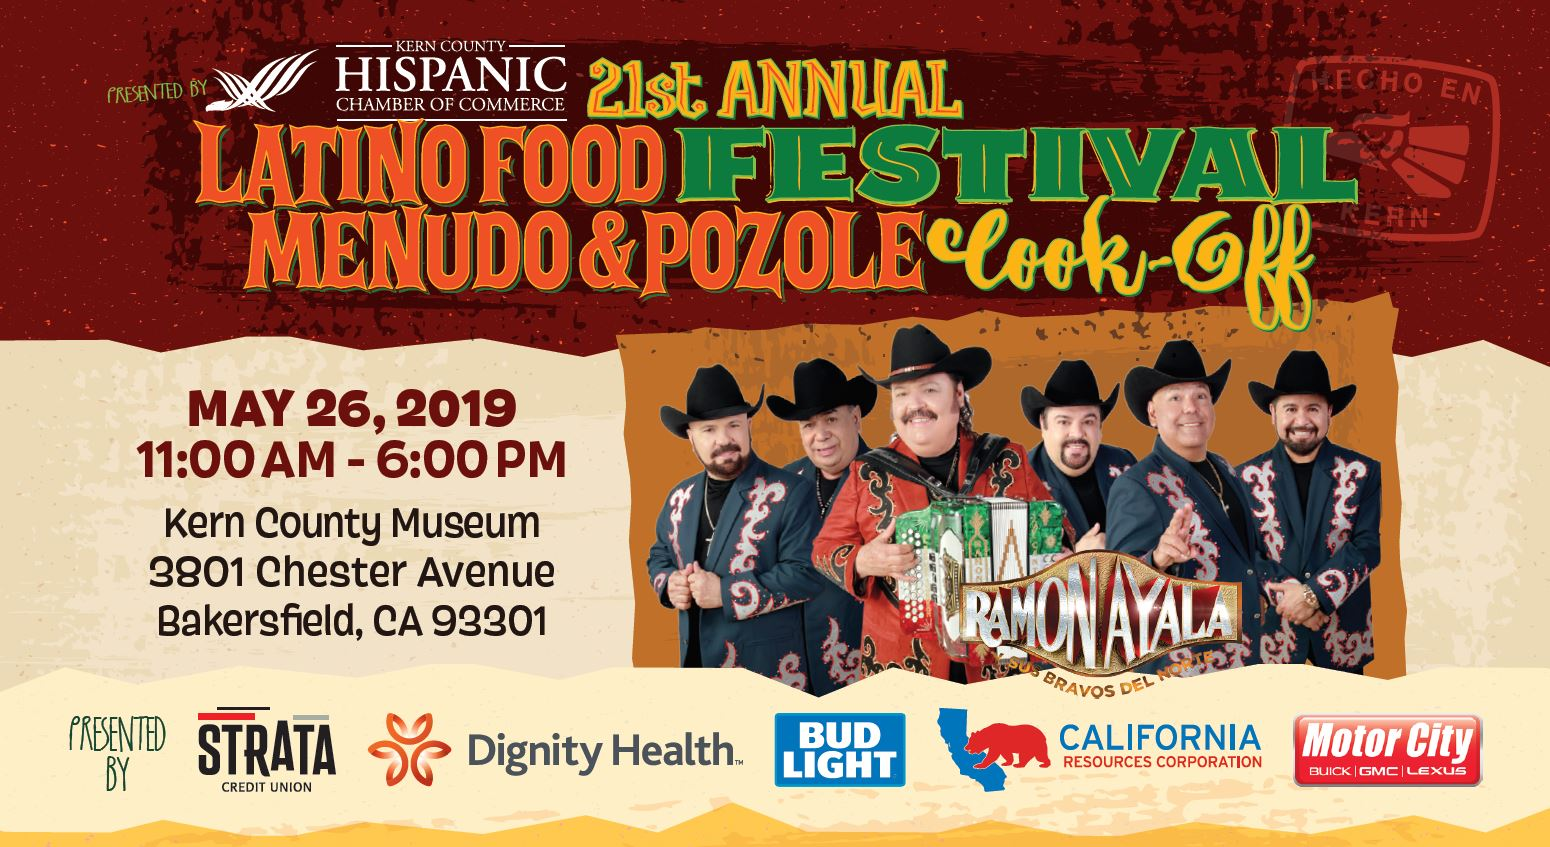 Tickets for Latino Food Festival Menudo & Pozole Cook-Off in Bakersfield from ShowClix